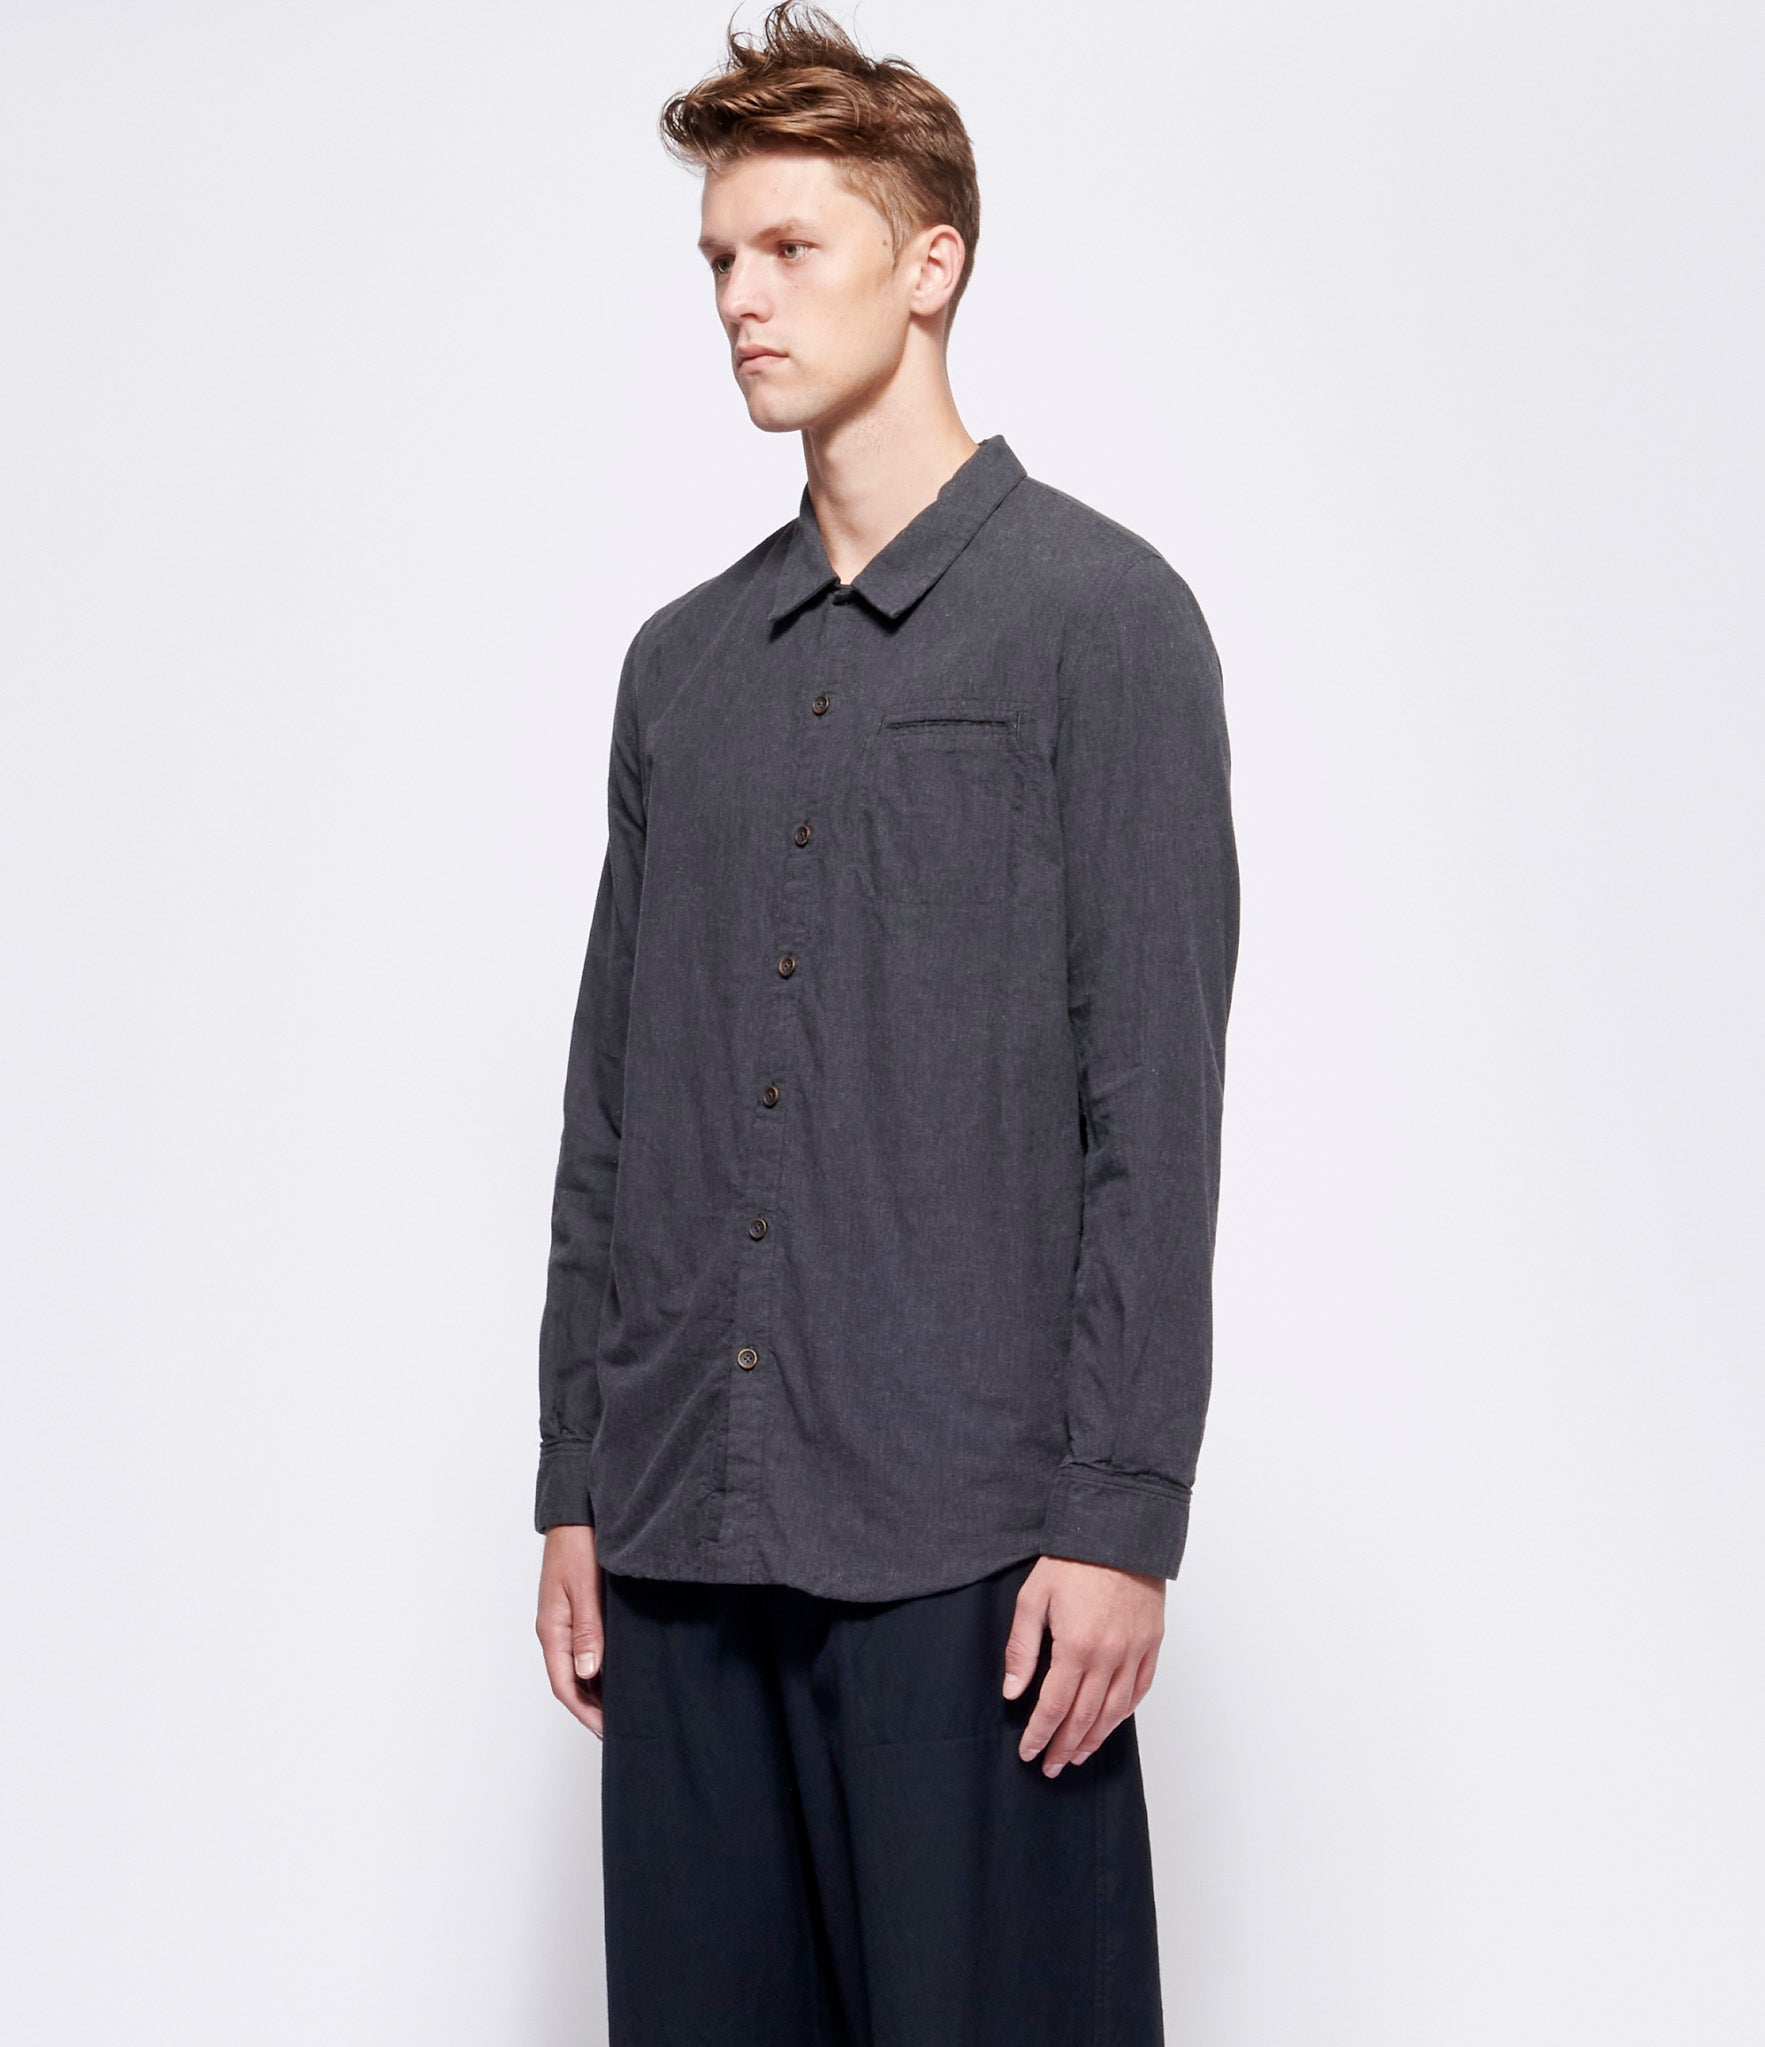 'T Ensemble Charcoal Melange Jersey-Lined Classic Fit Shirt